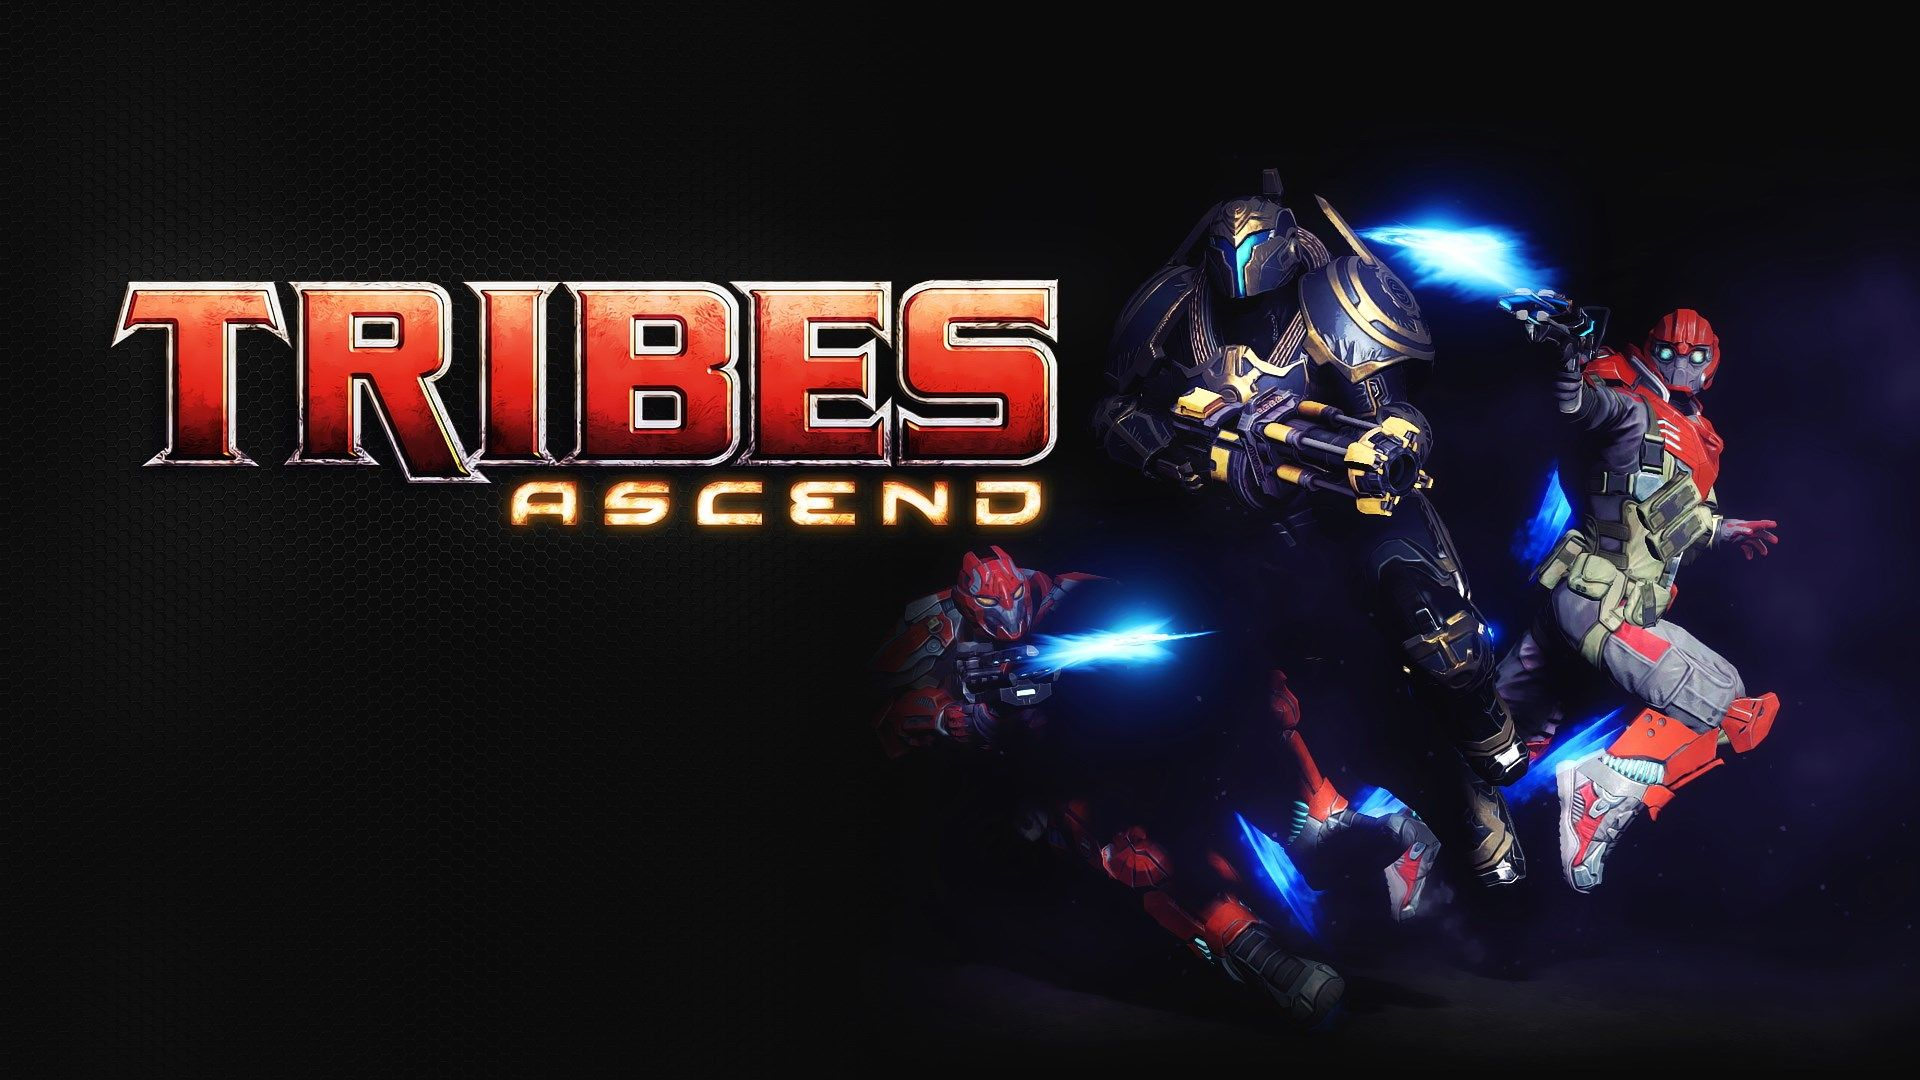 free pictures Tribes: Ascend  (Langdon Turner 1920x1080)